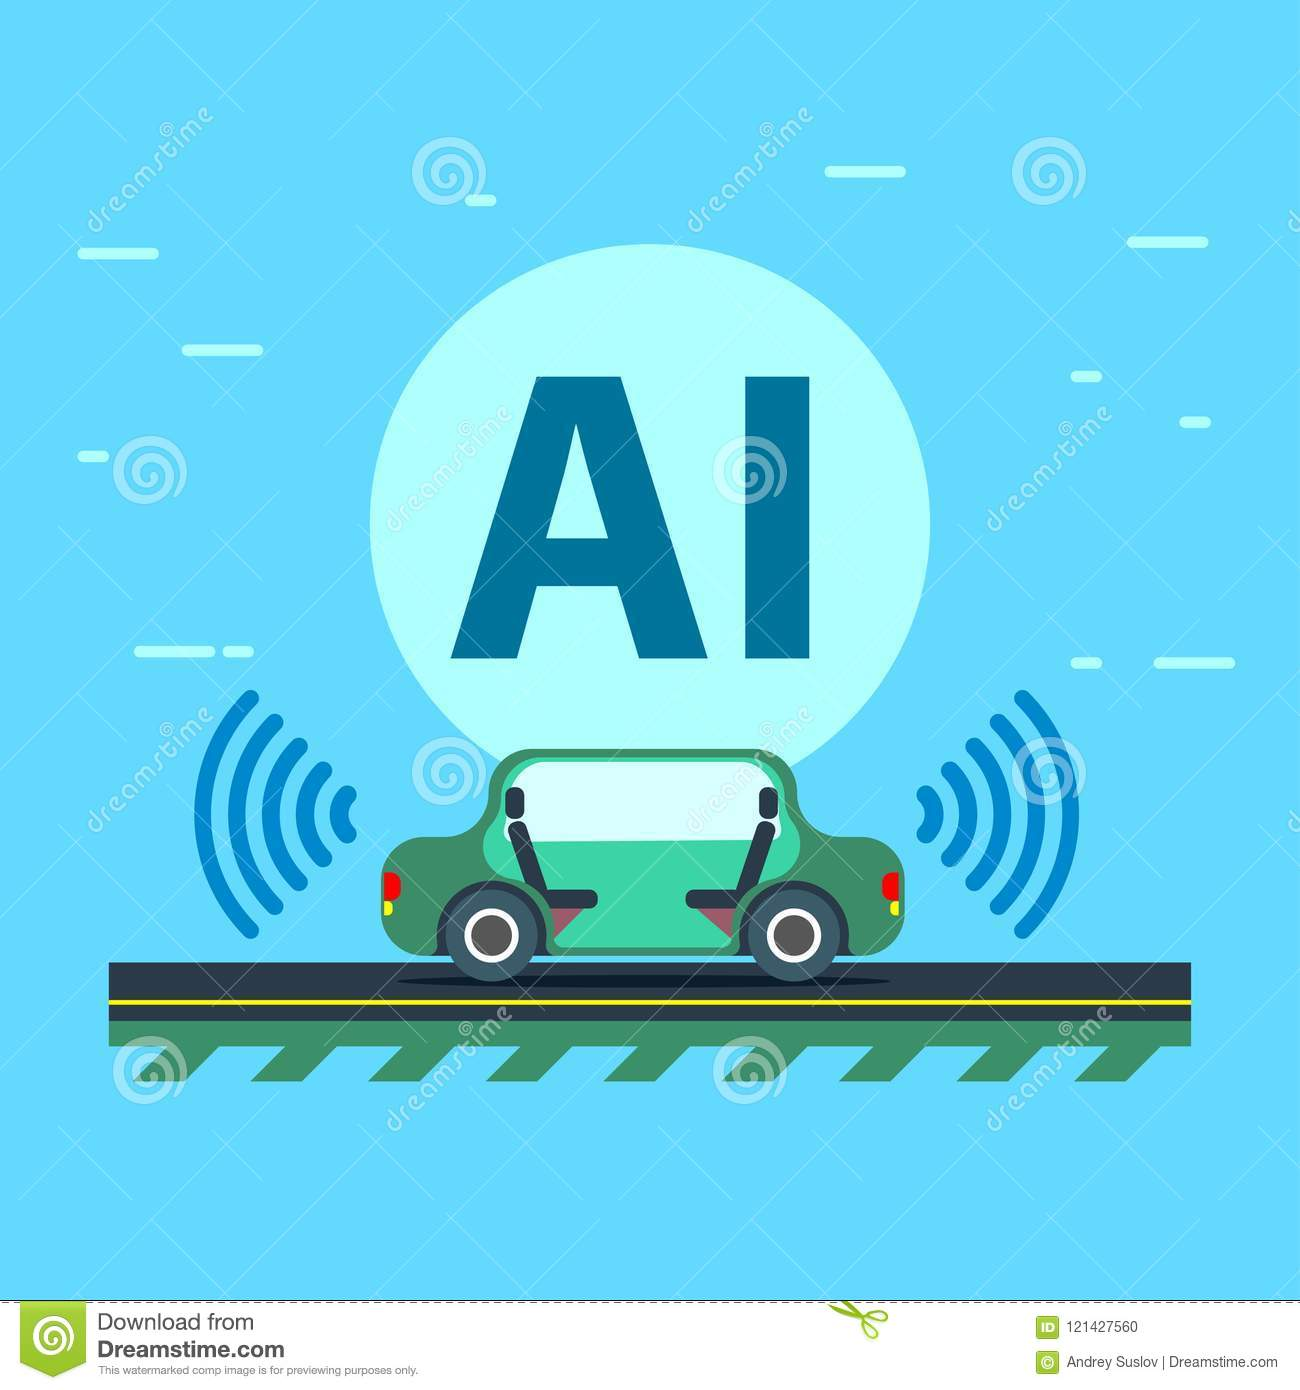 Artificial intelligence controls the Autonomous vehicle